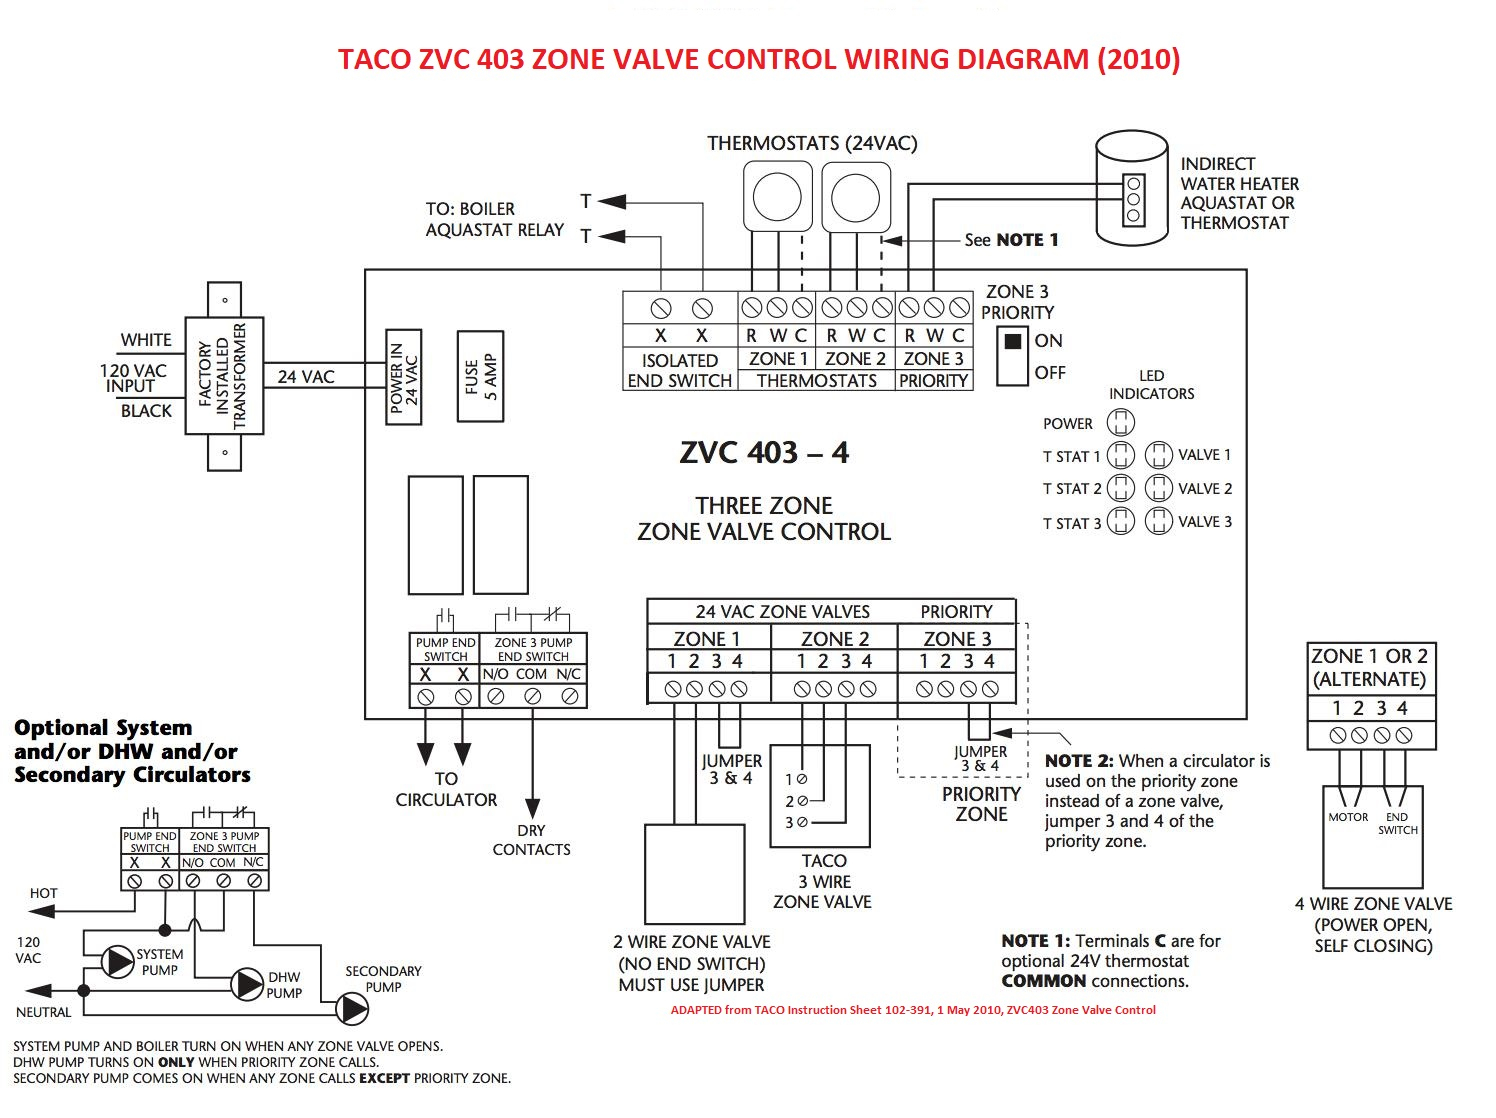 Zone Valve Wiring Installation & Instructions: Guide To Heating - Bryant Evolution Thermostat Wiring Diagram Convert To Nest